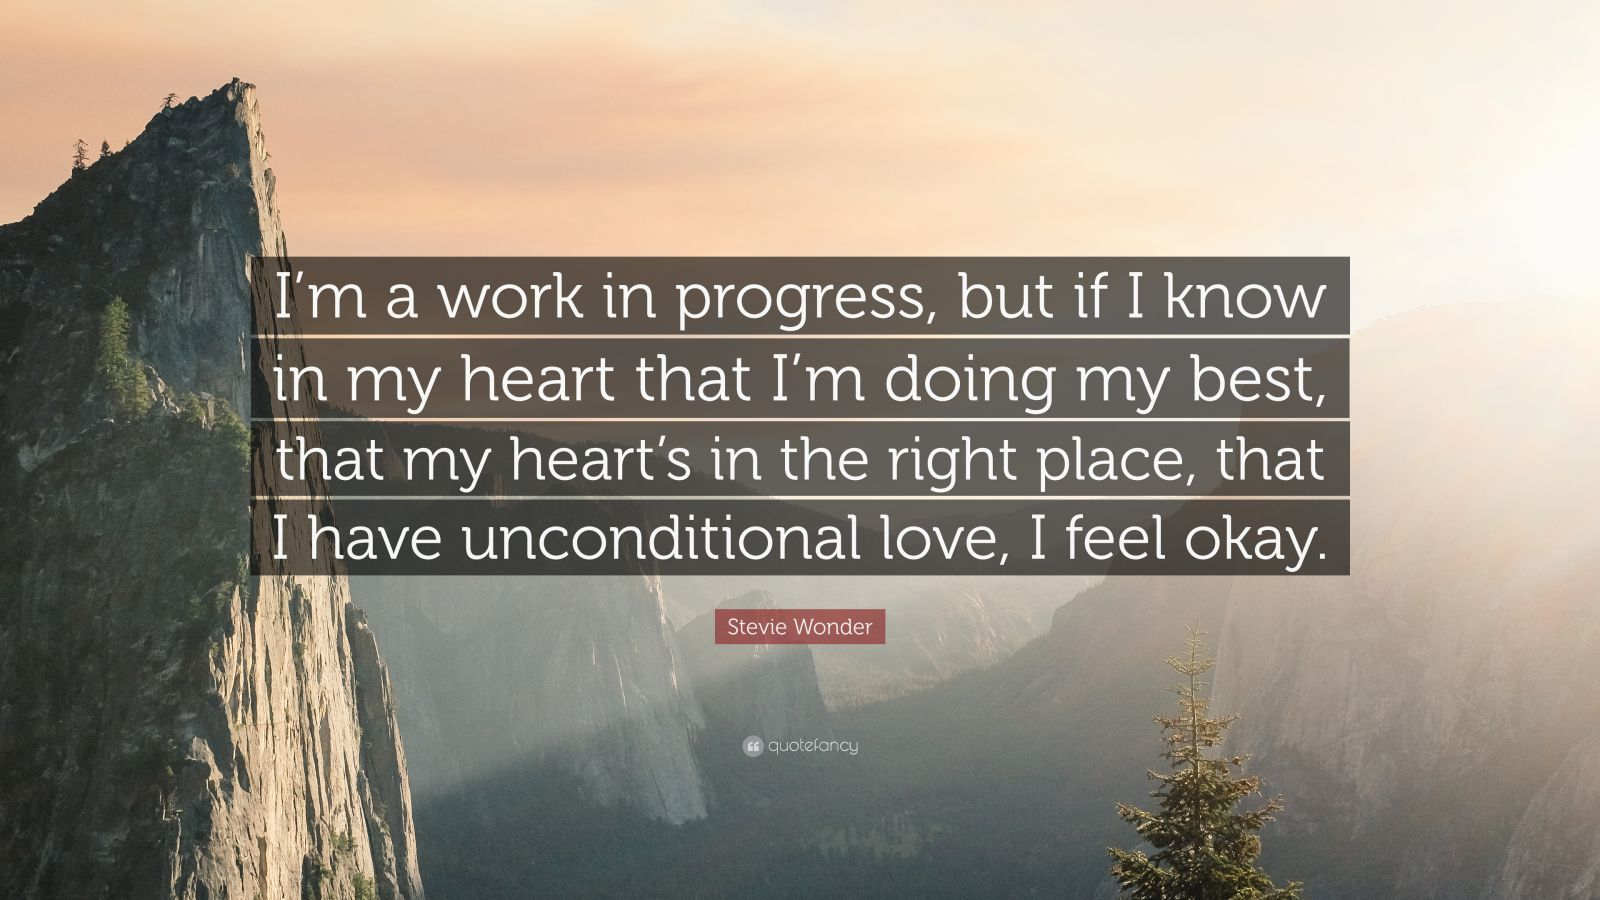 """Stevie Wonder Quote: """"I'm a work in progress, but if I know in my heart that I'm doing my best, that my heart's in the right place, that I have unconditional love, I feel okay."""""""